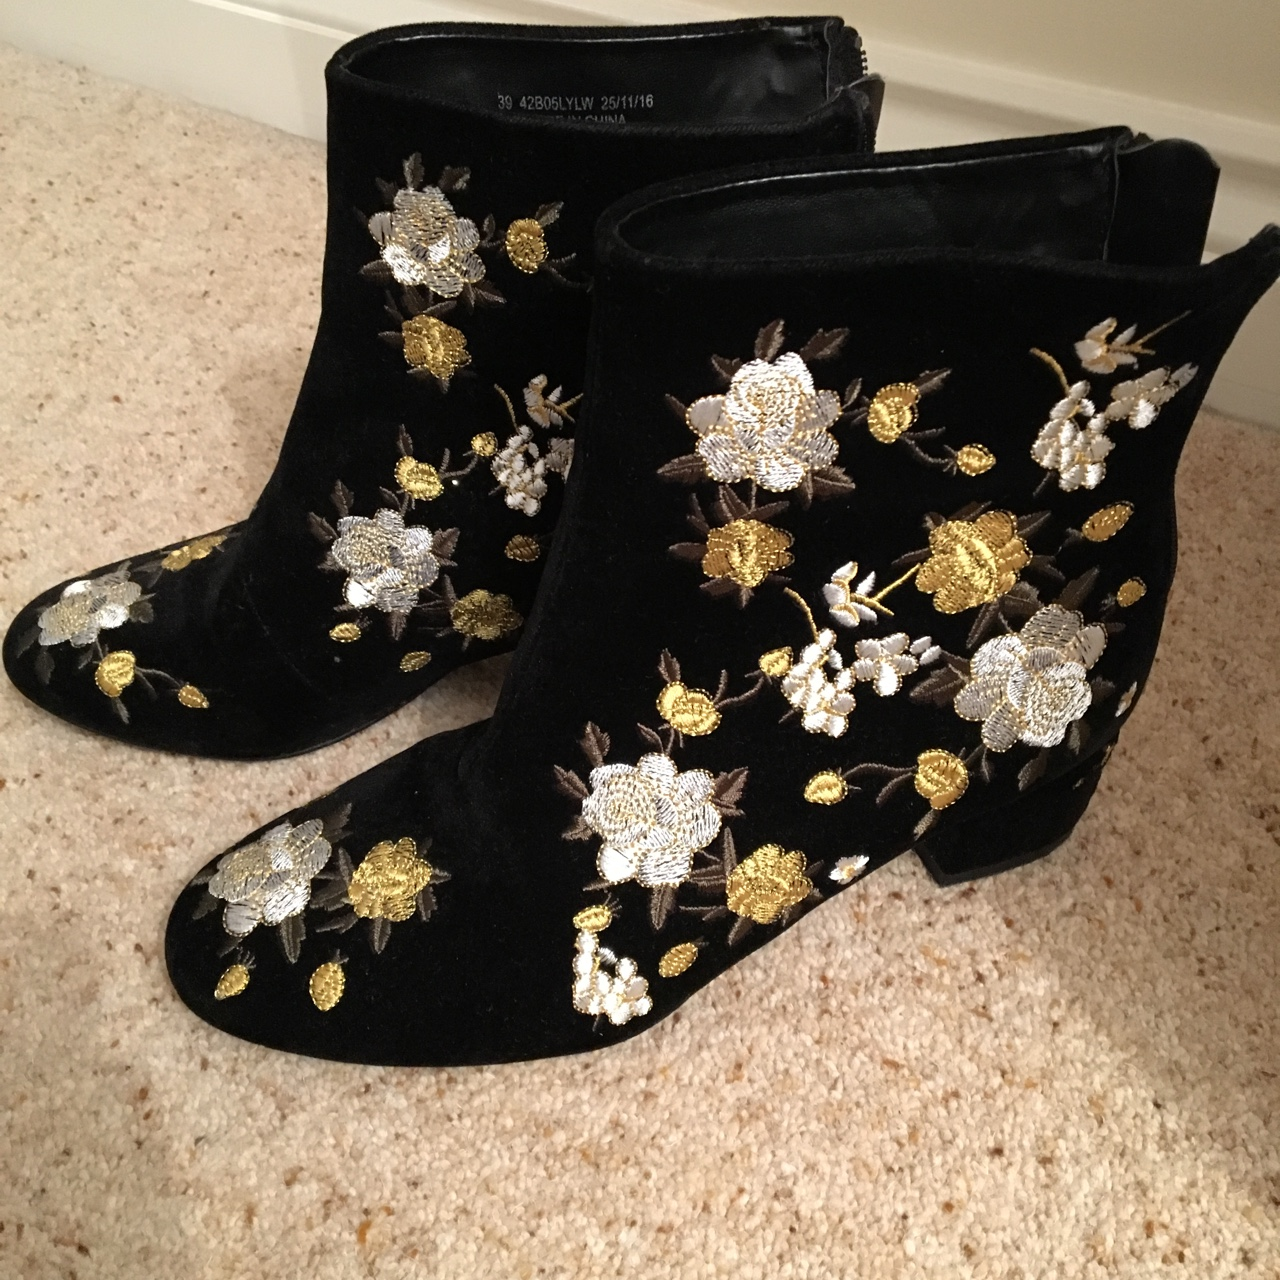 Topshop black embroidered ankle boots